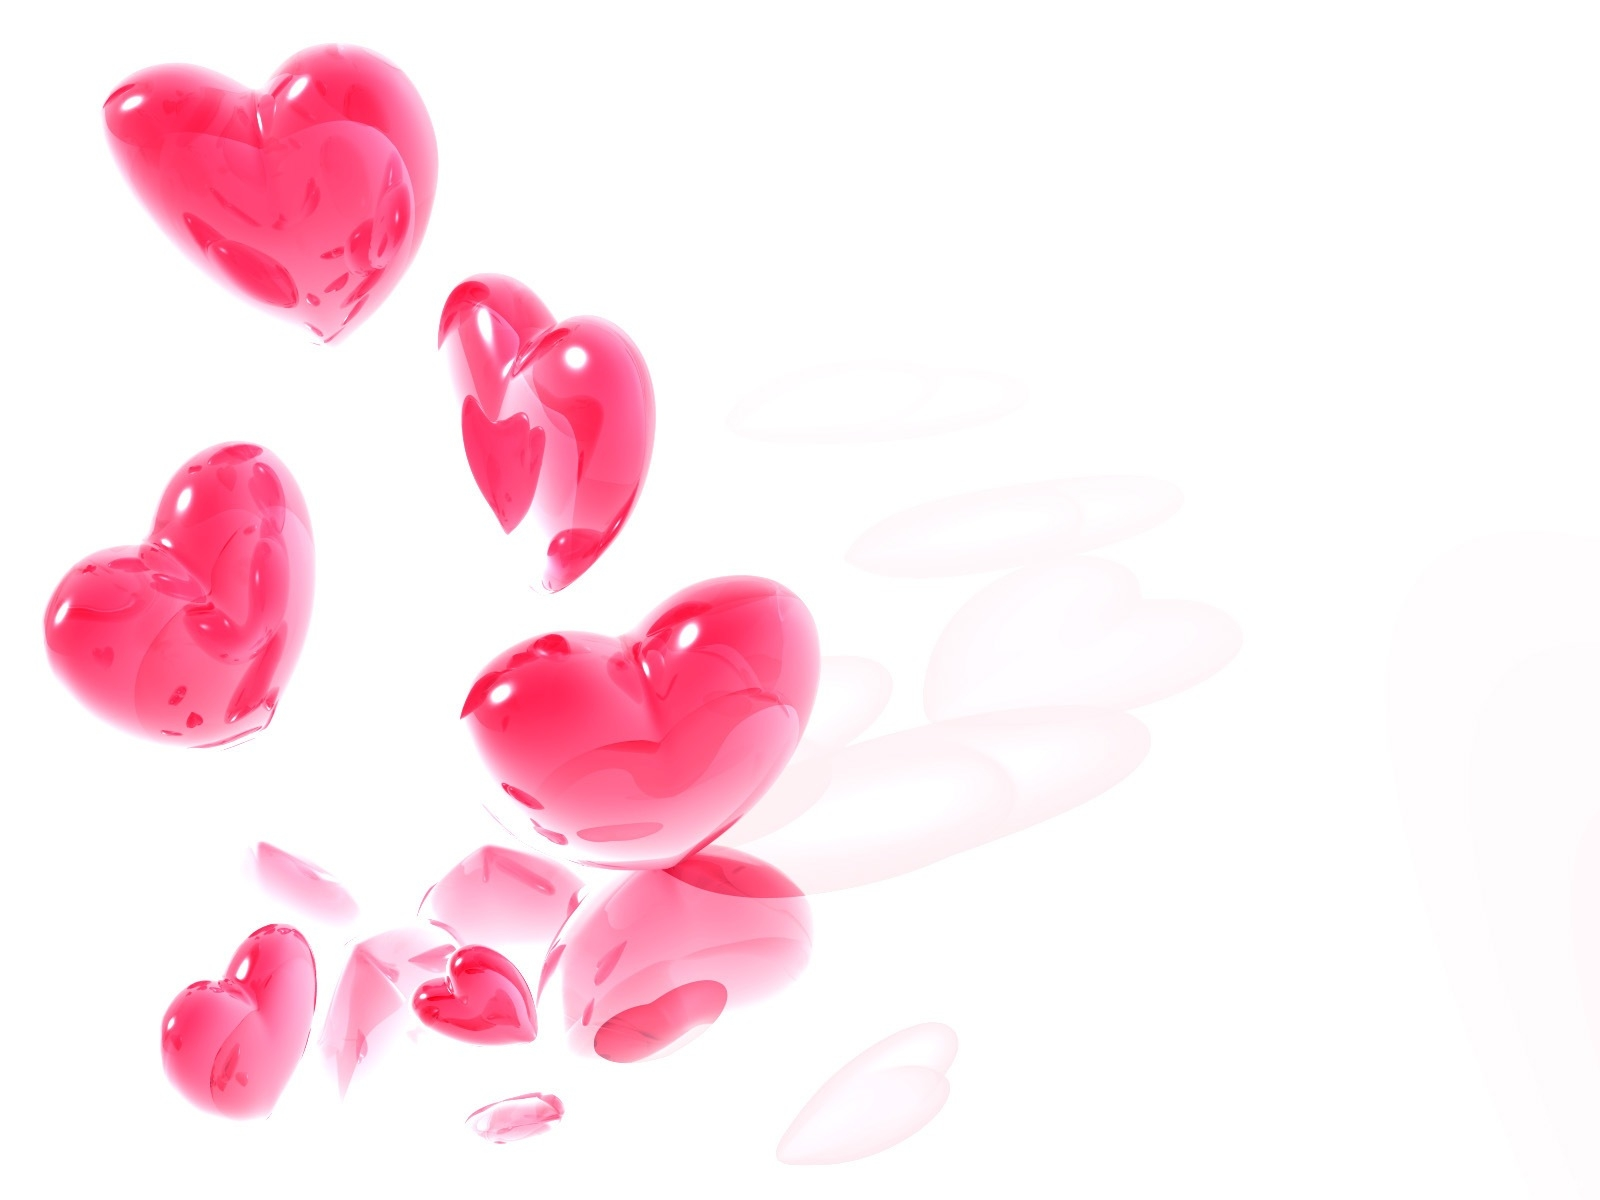 Pink Hearts Wallpaper Free Beautiful Love Heart Symbol Hd